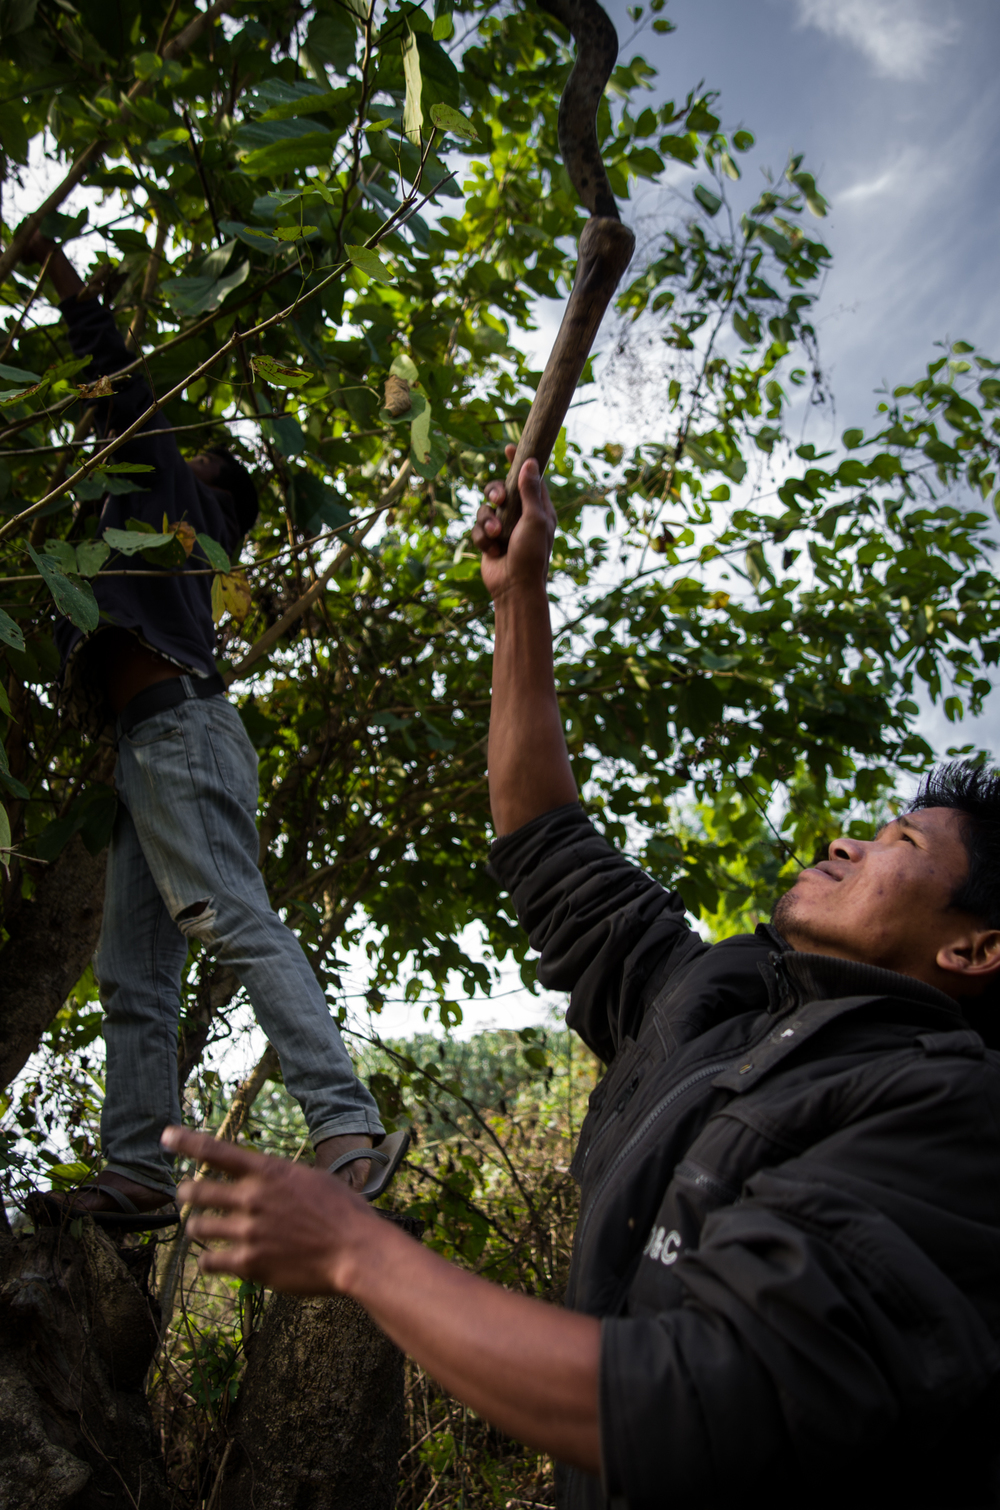 Pipan (right) and Nobin gathering vegetation for the gibbons.